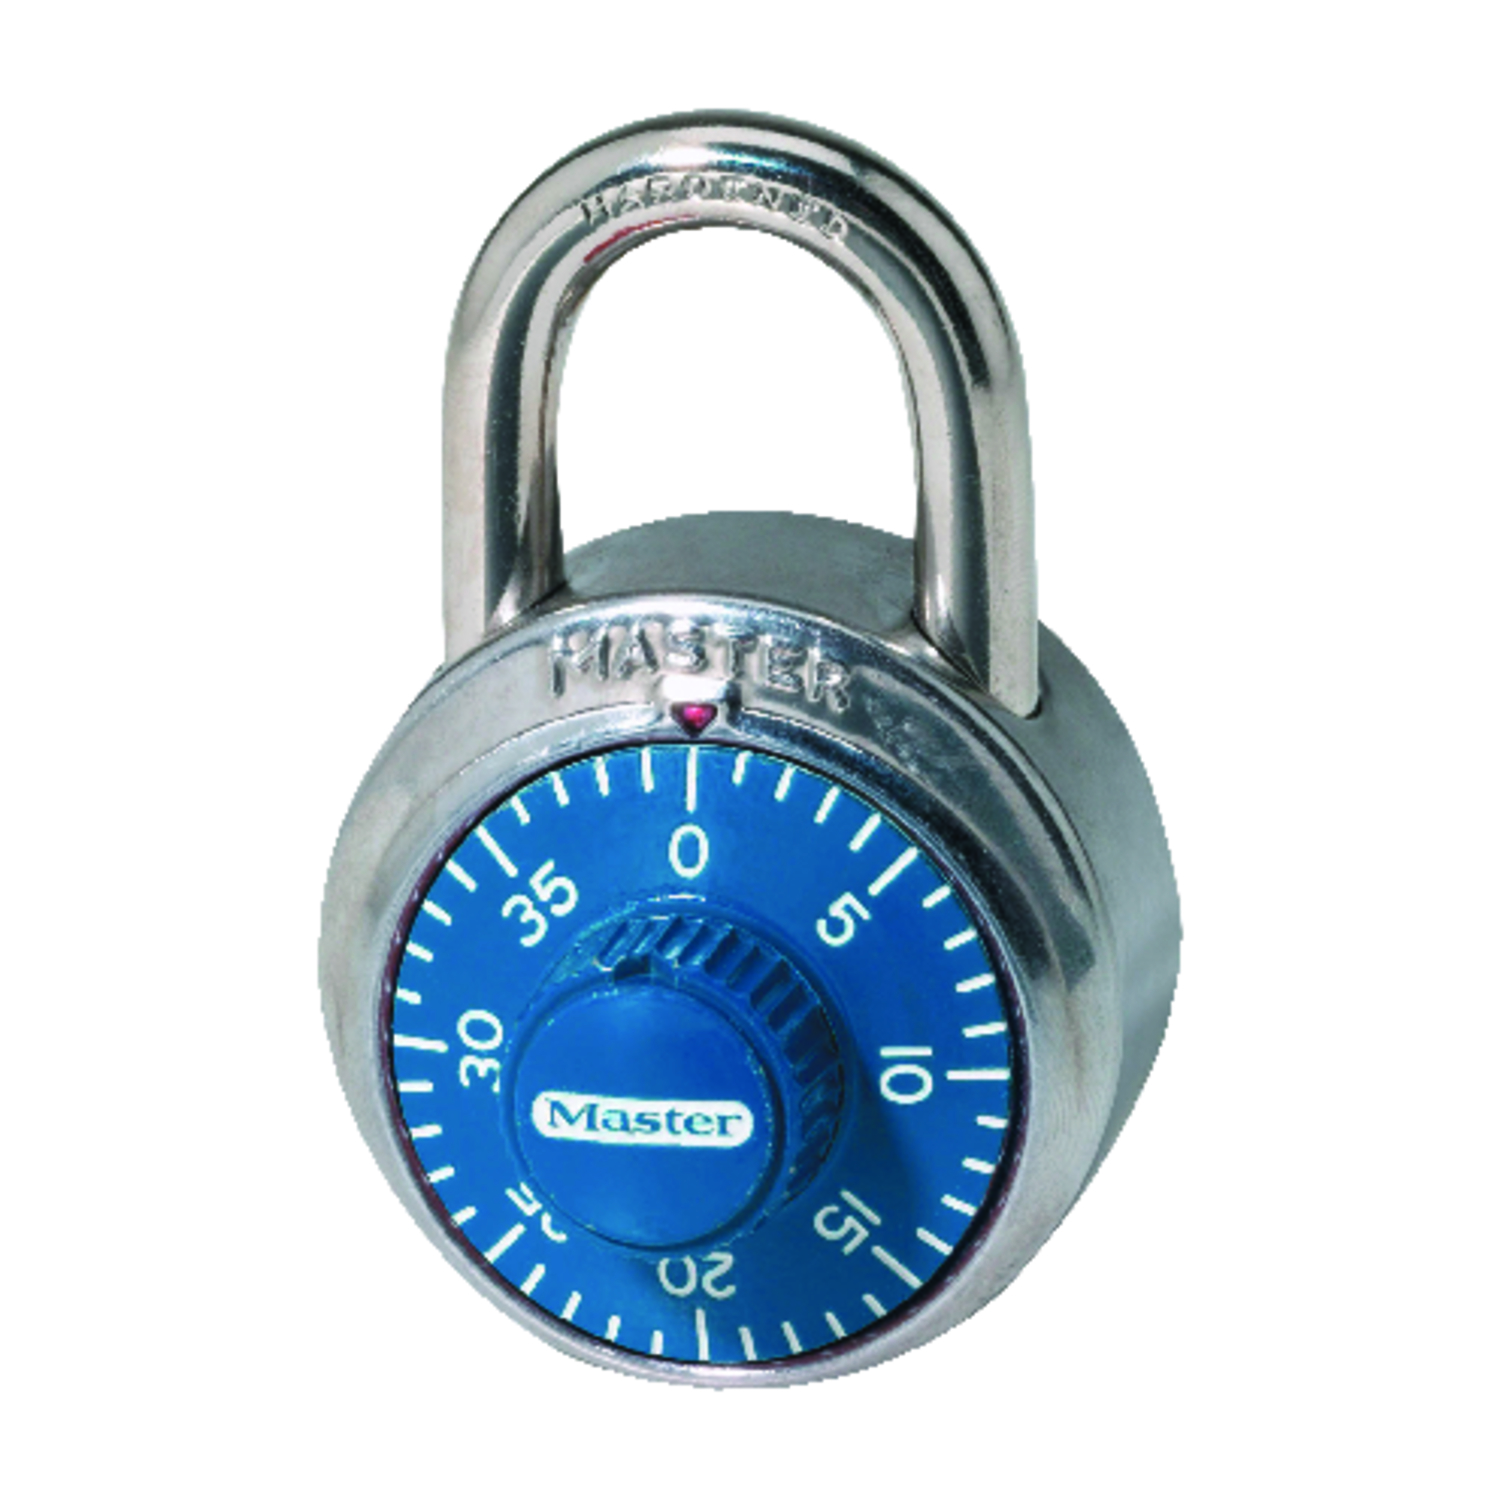 Master Lock  2 in. H x 7/8 in. W Anti-Shim Technology  Steel  Combination Padlock  1 each